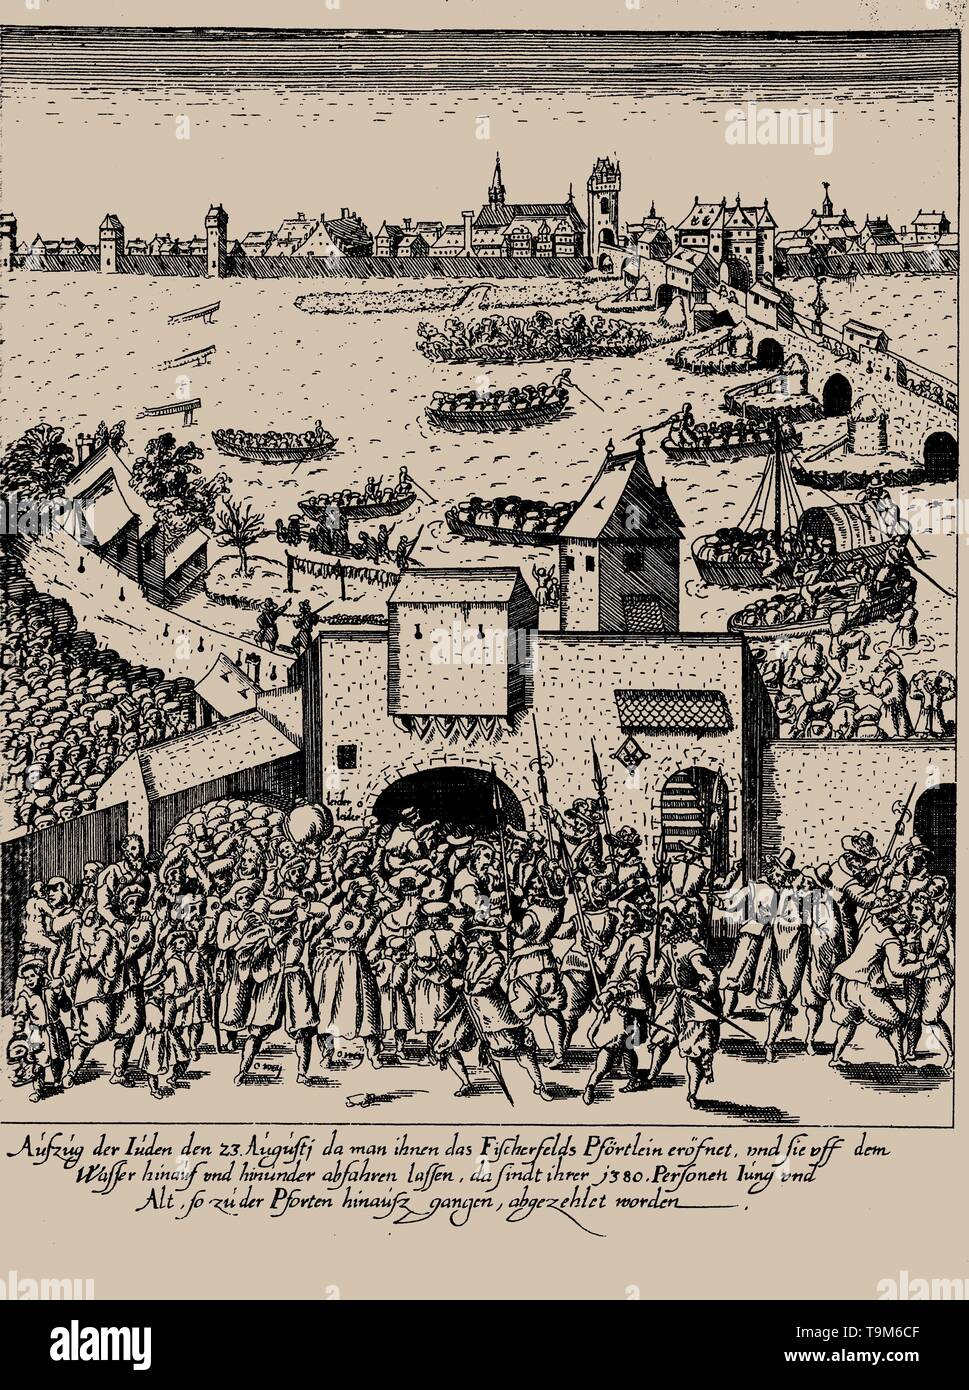 The Fettmilch Rising. Expulsion of the jews from Frankfurt on August 23, 1614. Museum: PRIVATE COLLECTION. Author: GEORG KELLER. - Stock Image